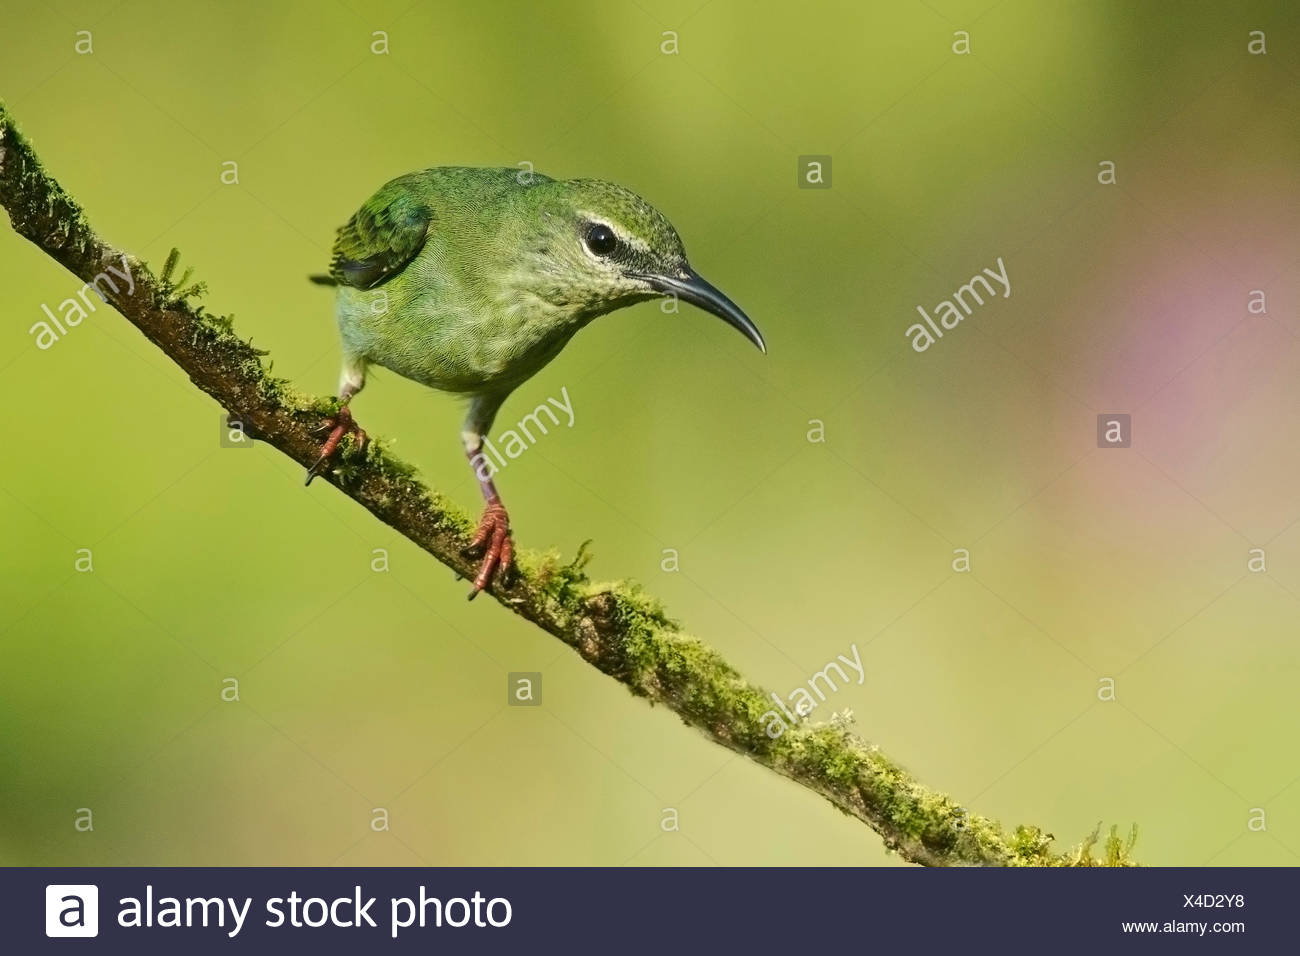 Red-legged Honeycreeper (Cyanerpes cyaneus) female on branch, Costa Rica - Stock Image